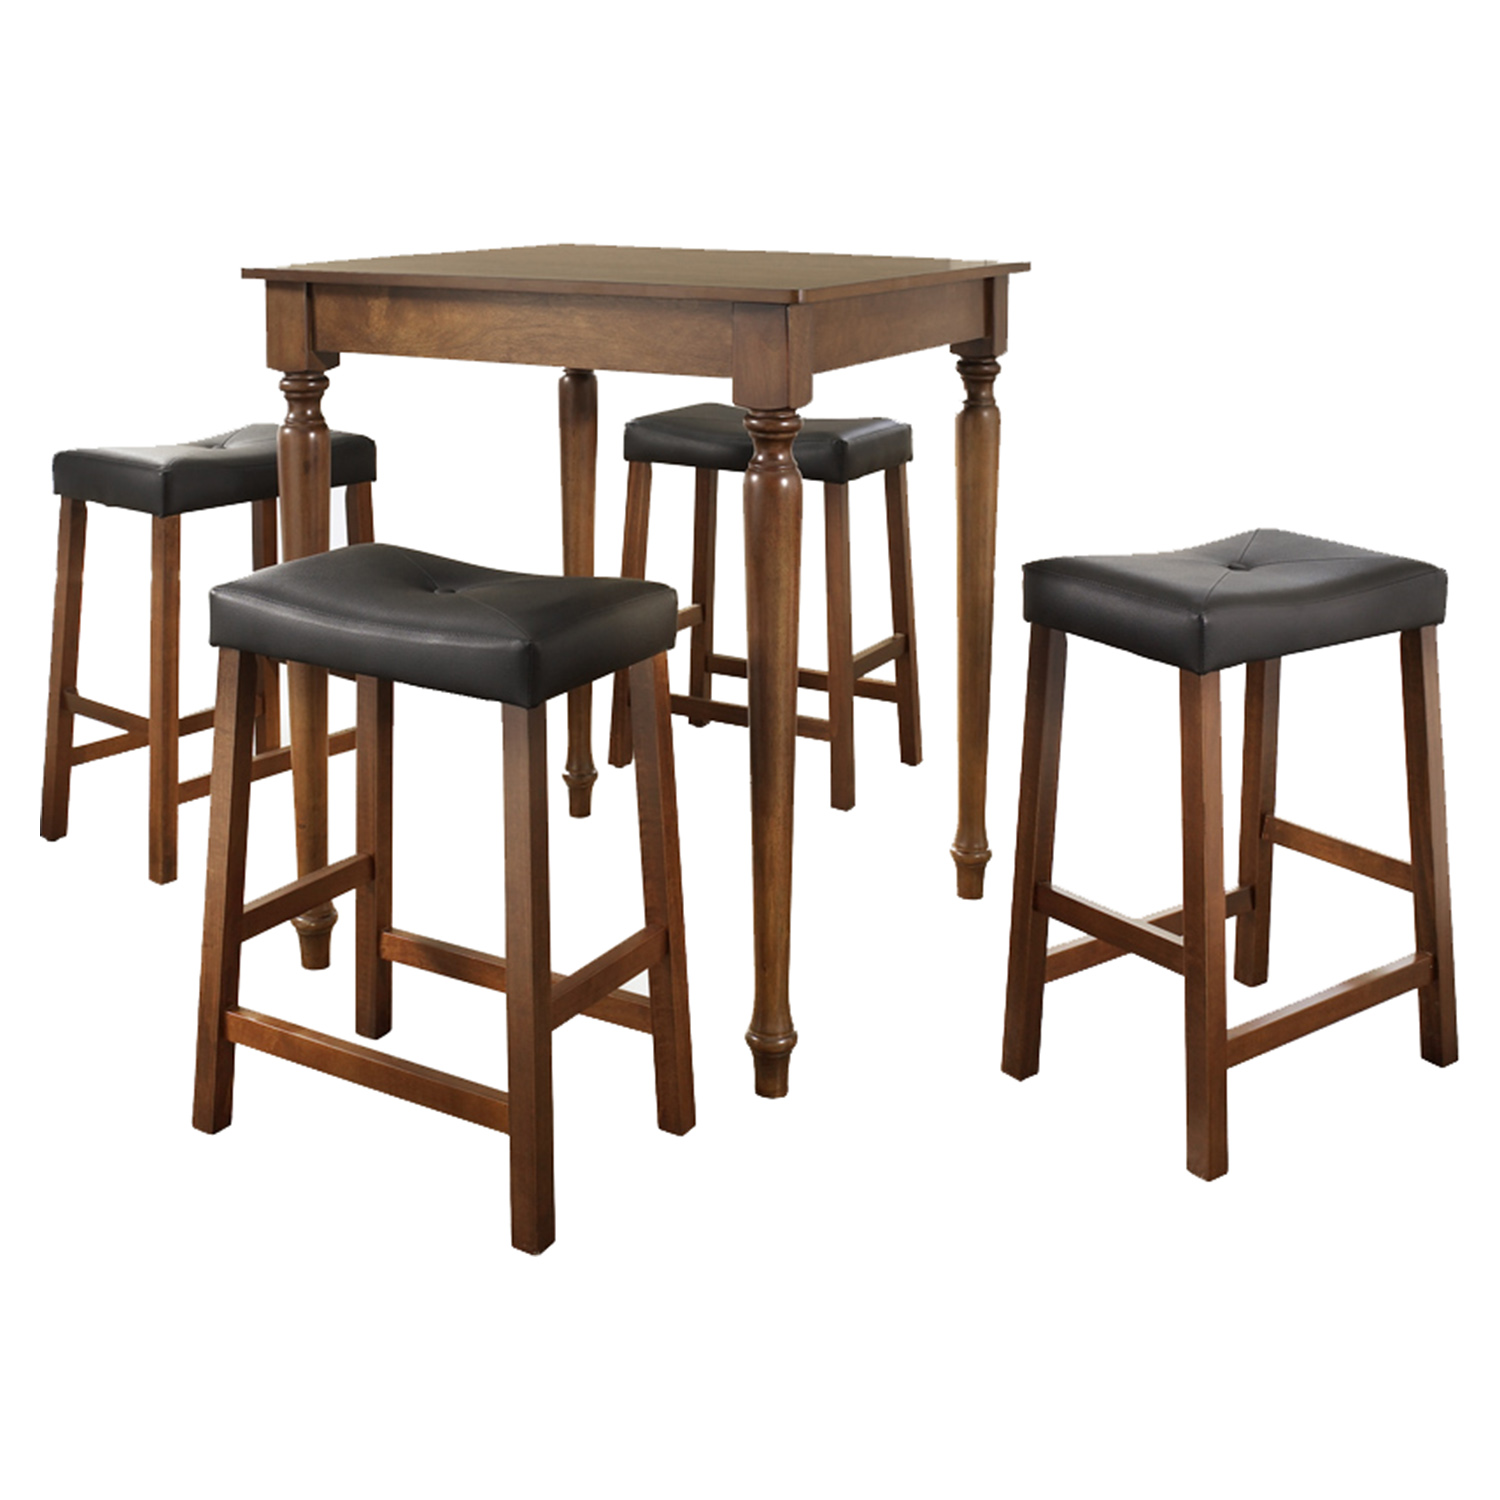 5-Piece Pub Dining Set - Turned Table Legs, Saddle Stools, Classic Cherry - CROS-KD520012CH